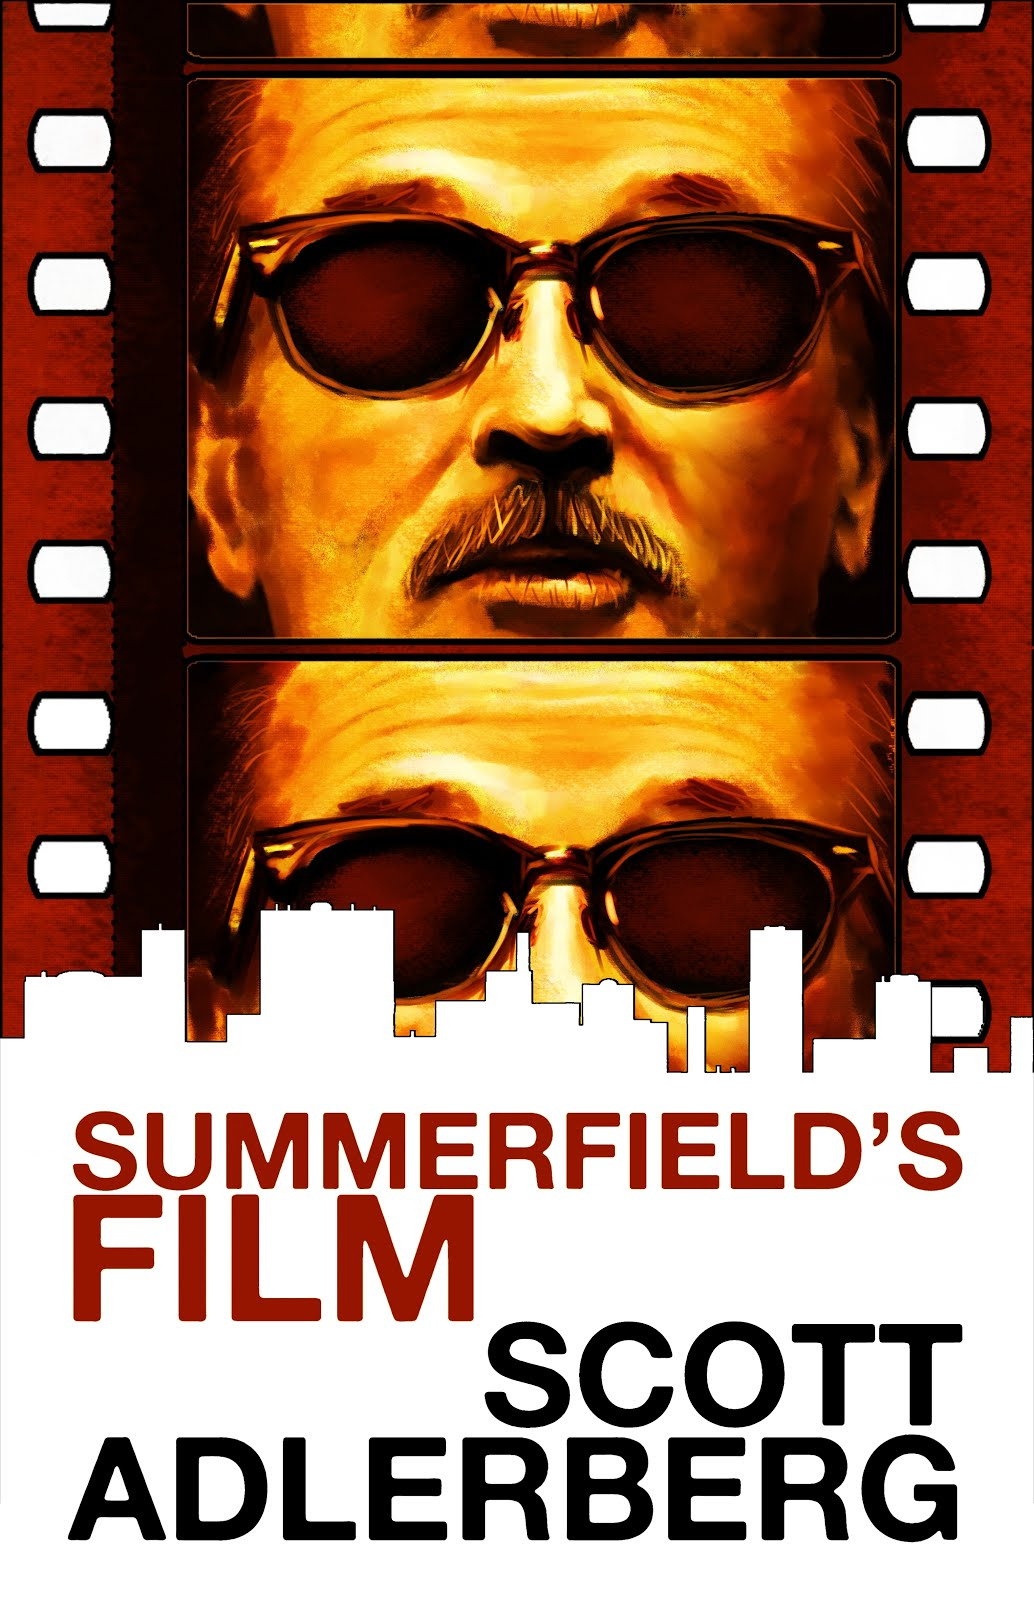 SUMMERFIELD'S FILM